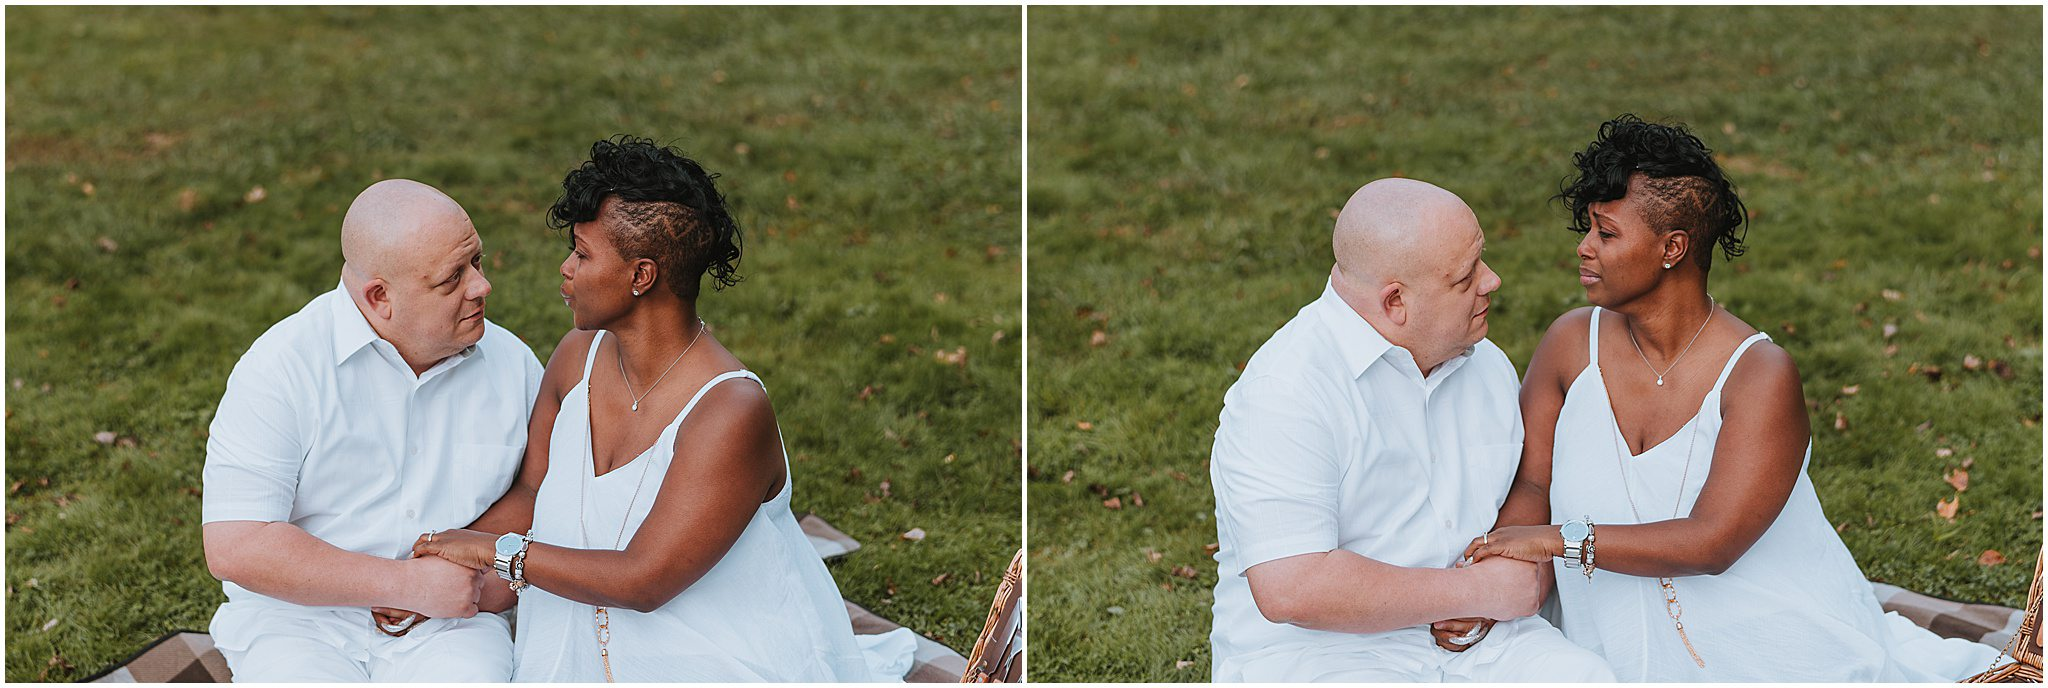 Maria & Brian Engagement session Peaks of Otter Lodge Bedford VA 76